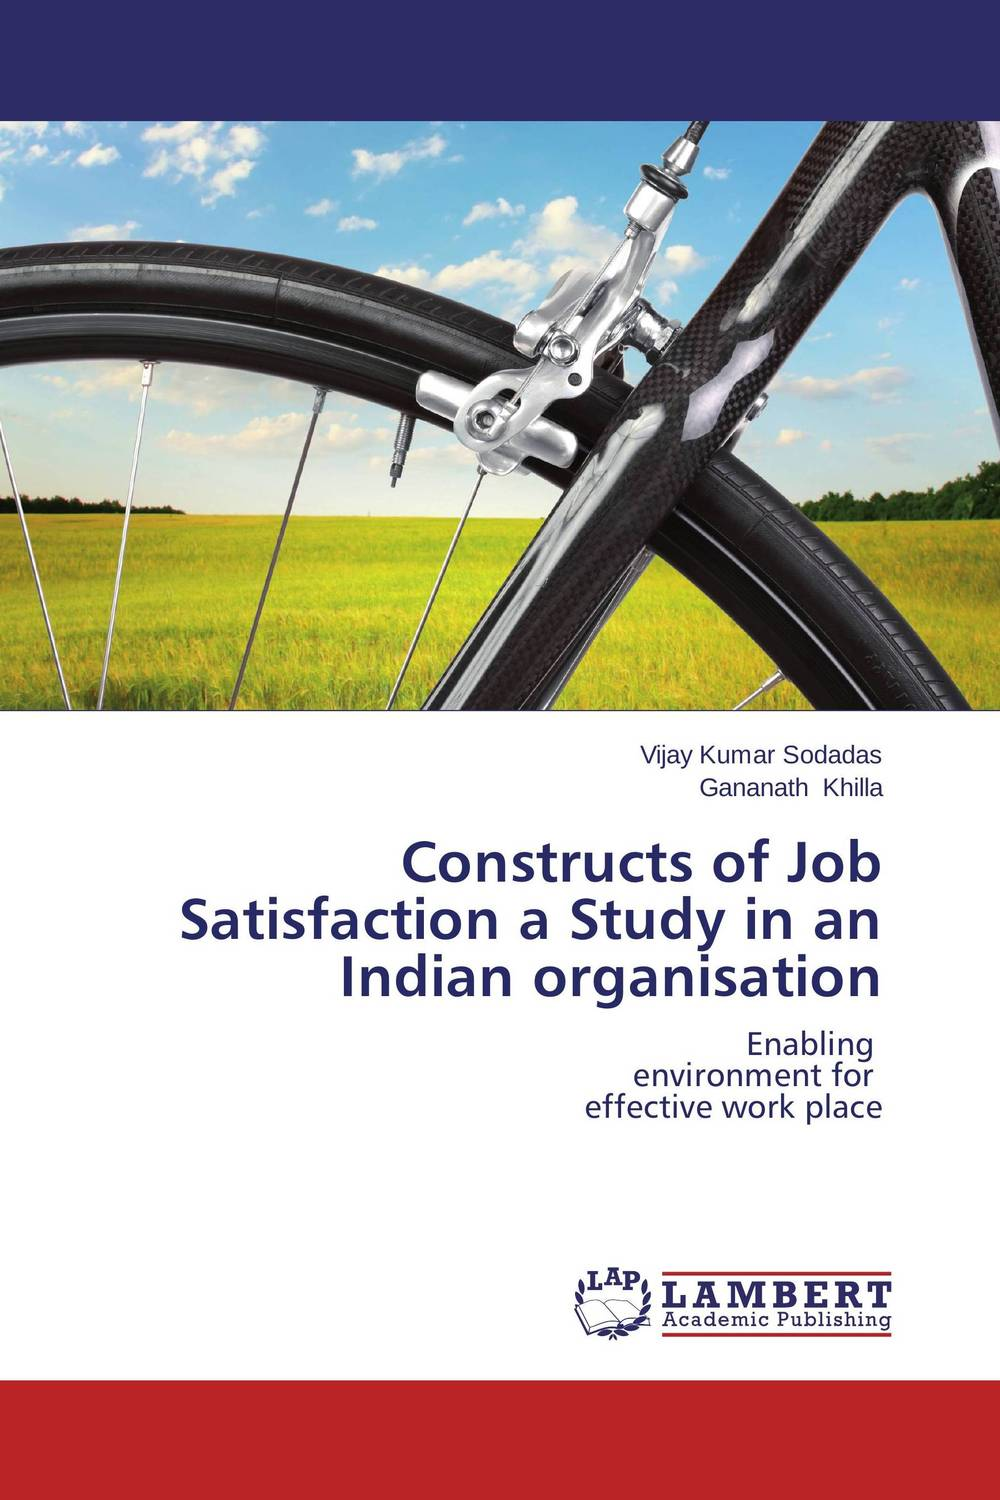 Constructs of Job Satisfaction a Study in an Indian organisation vijay kumar sodadas and gananath khilla constructs of job satisfaction a study in an indian organisation